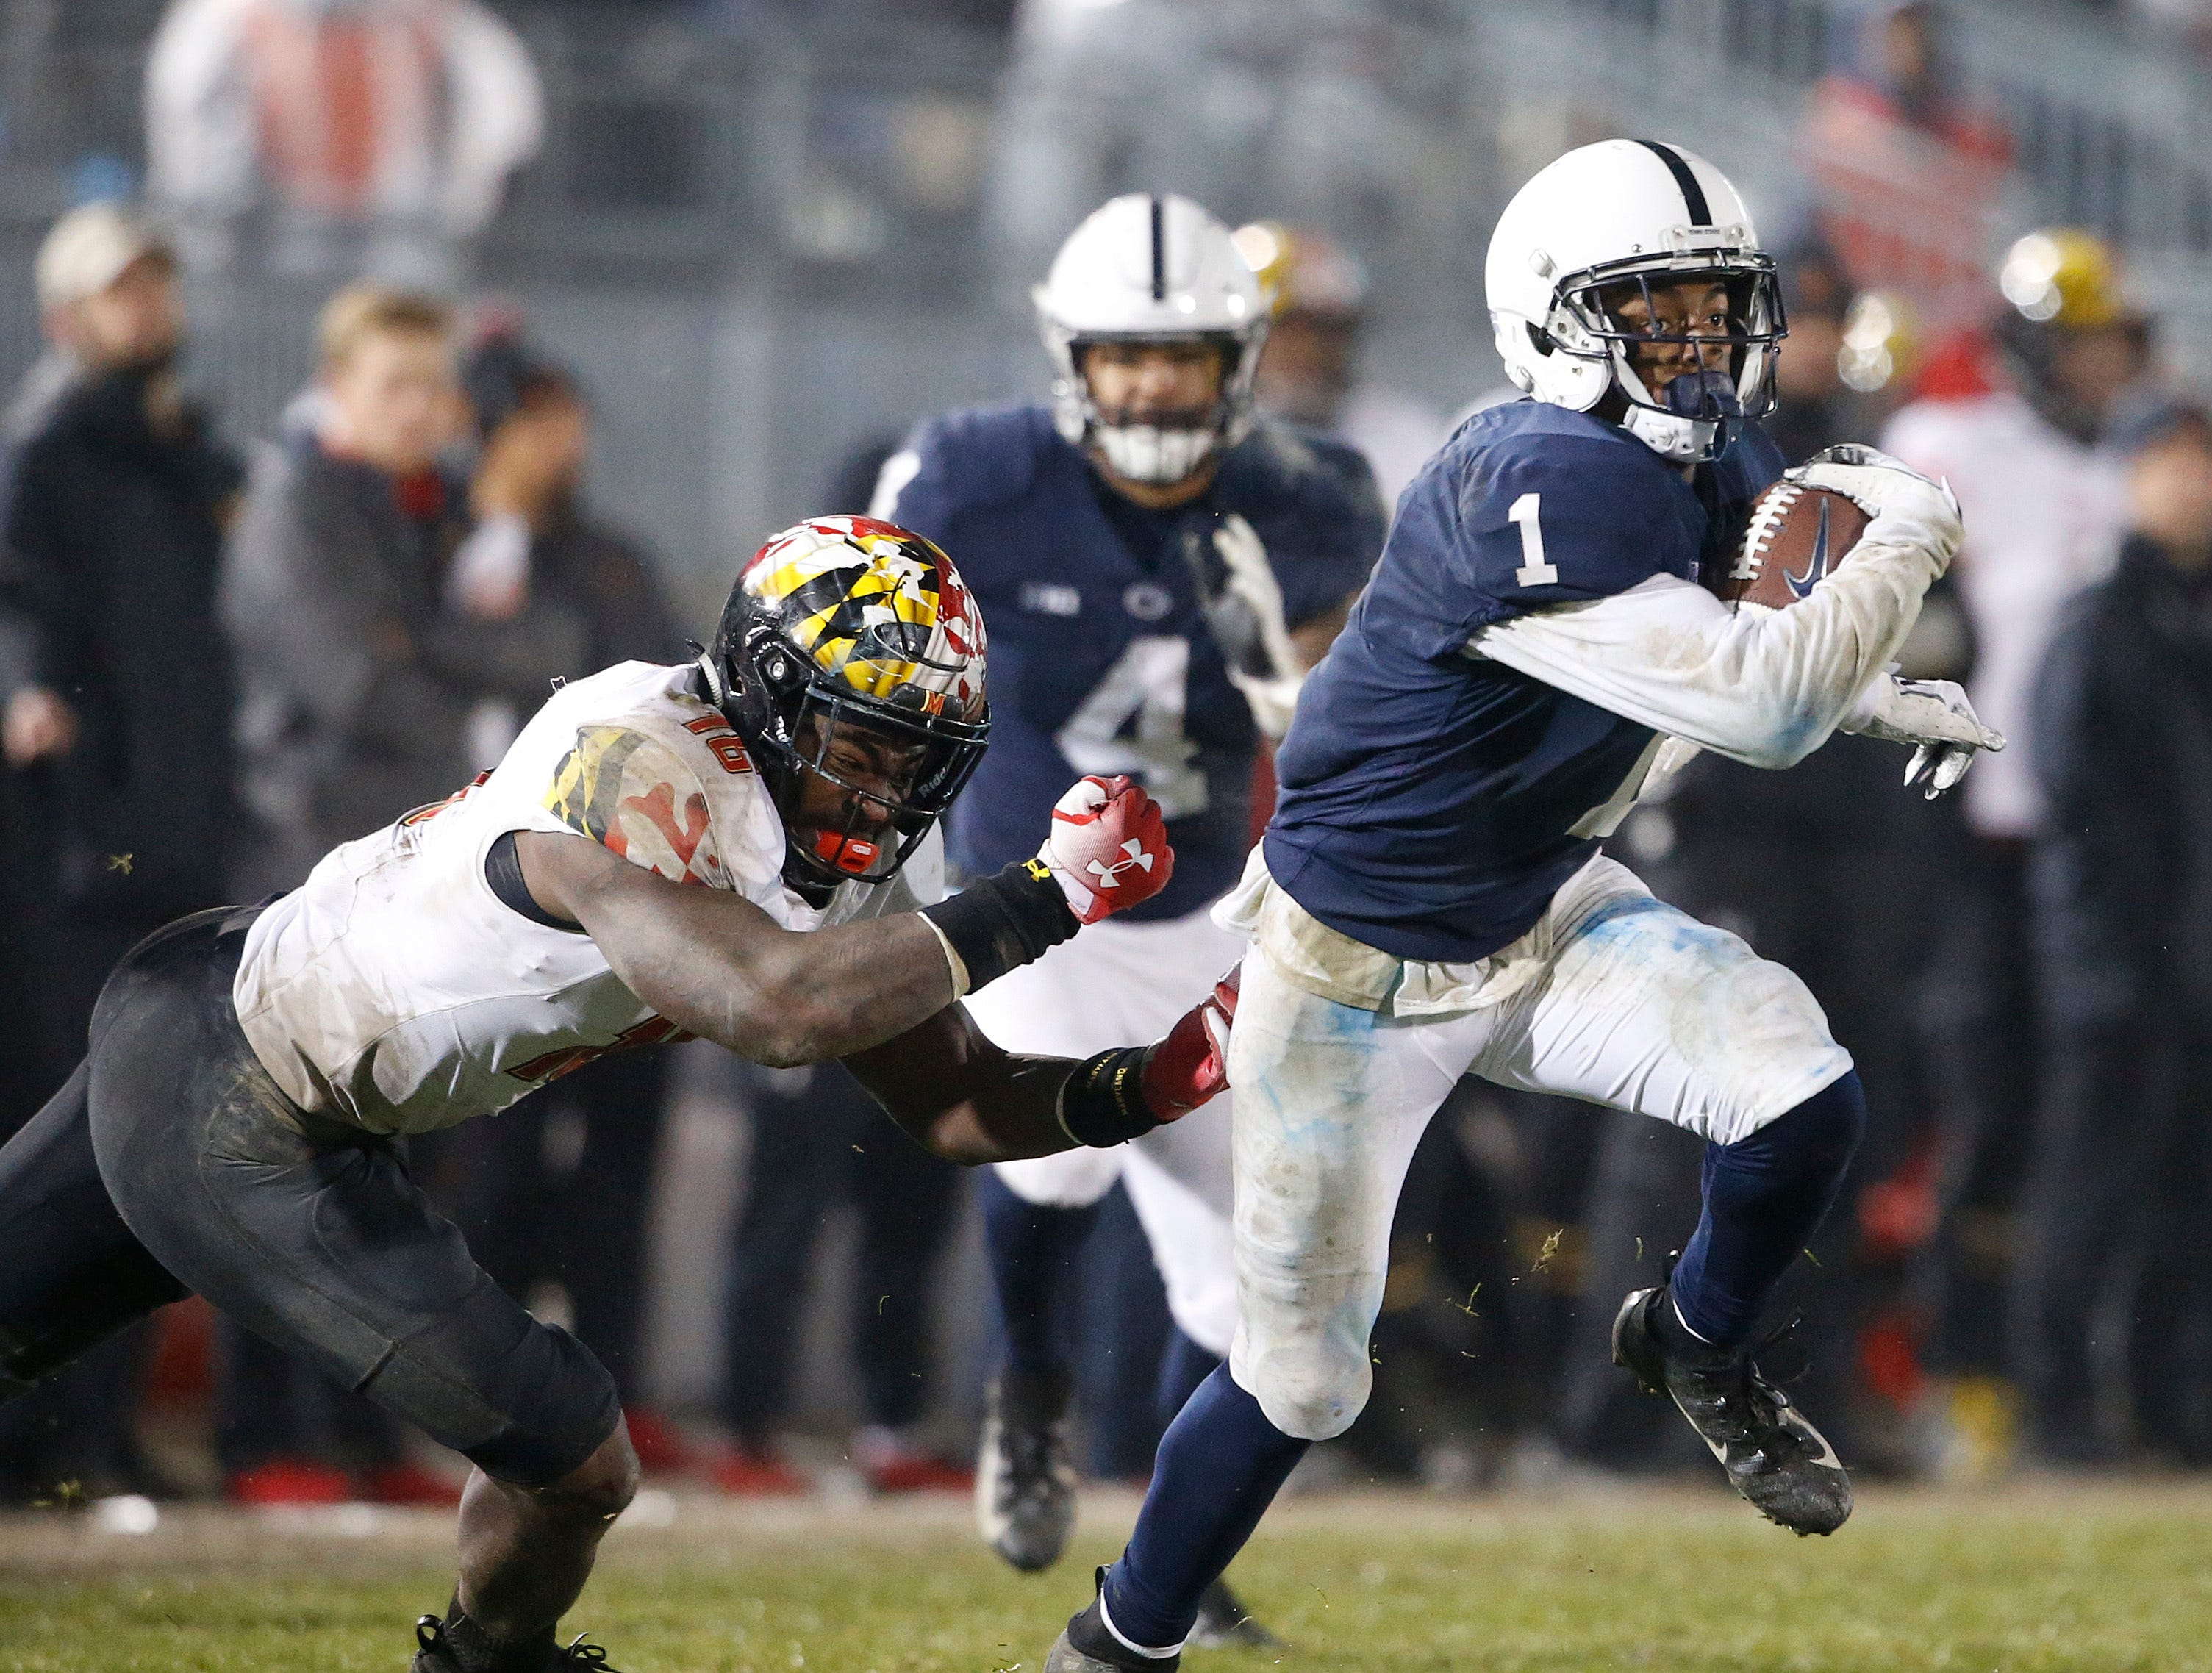 Penn State's KJ Hamler (1) gets past Maryland's Ayinde Eley (16) after a catch during the second half of an NCAA college football game in State College, Pa., Saturday, Nov. 24, 2018. Penn State won 38-3.